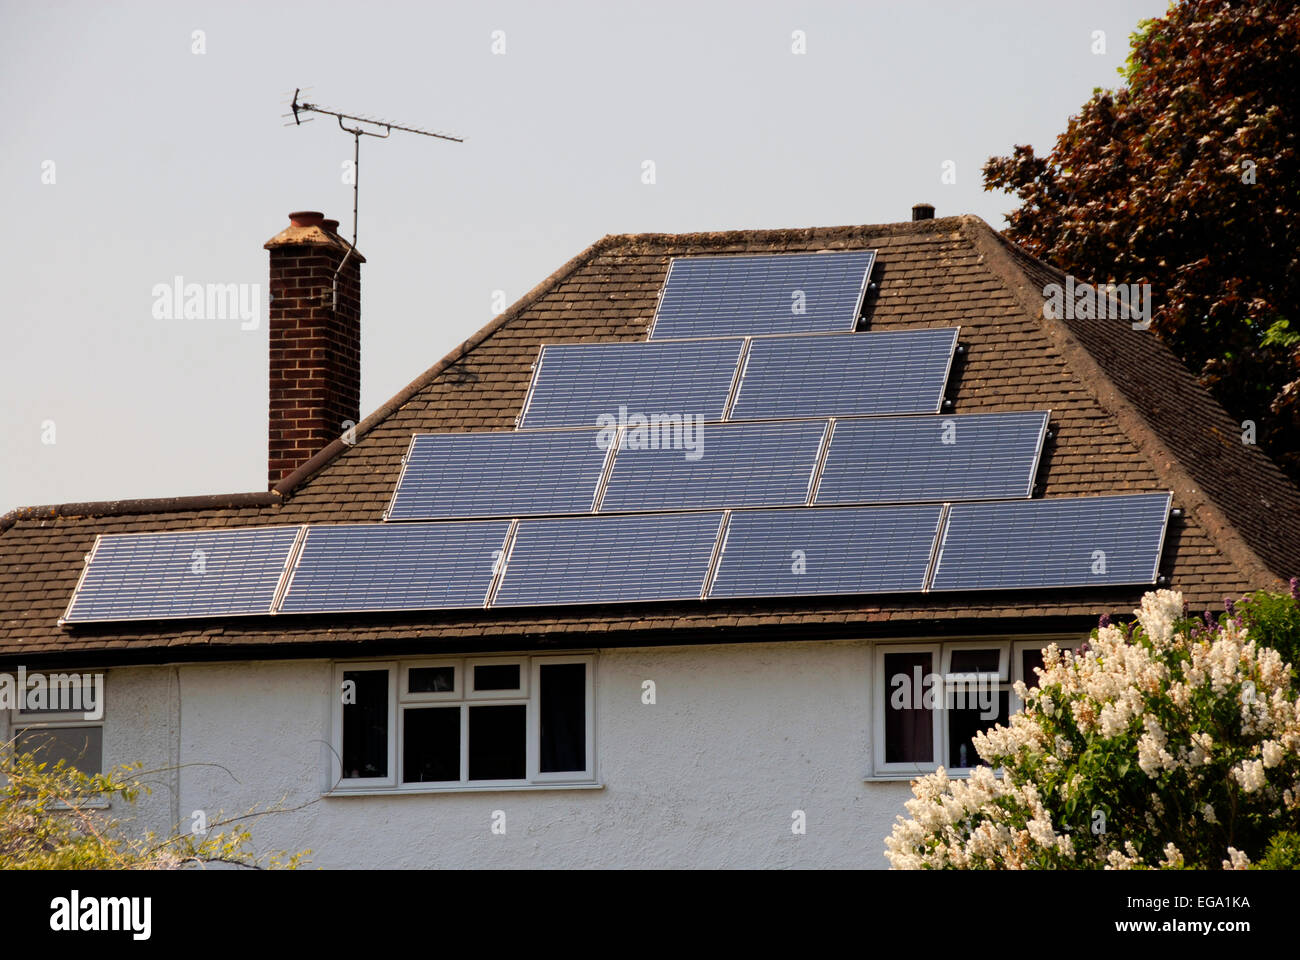 Solar panels on domestic roof - Stock Image